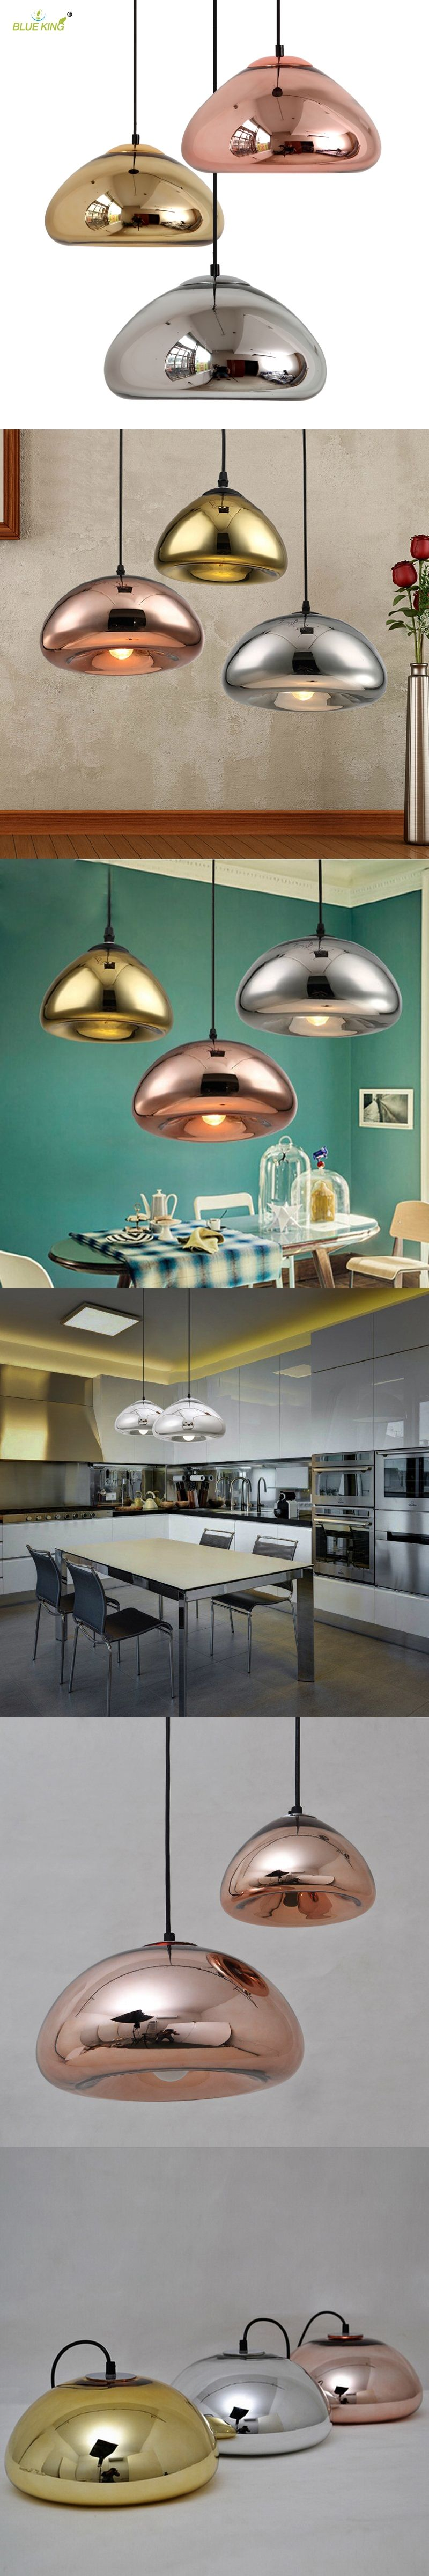 Modern Bowl Mirror L&s Glass LED Pendant Light Void L& Colored Glass Hanging L&s For Cafe & Modern Bowl Mirror Lamps Glass LED Pendant Light Void Lamp Colored ...